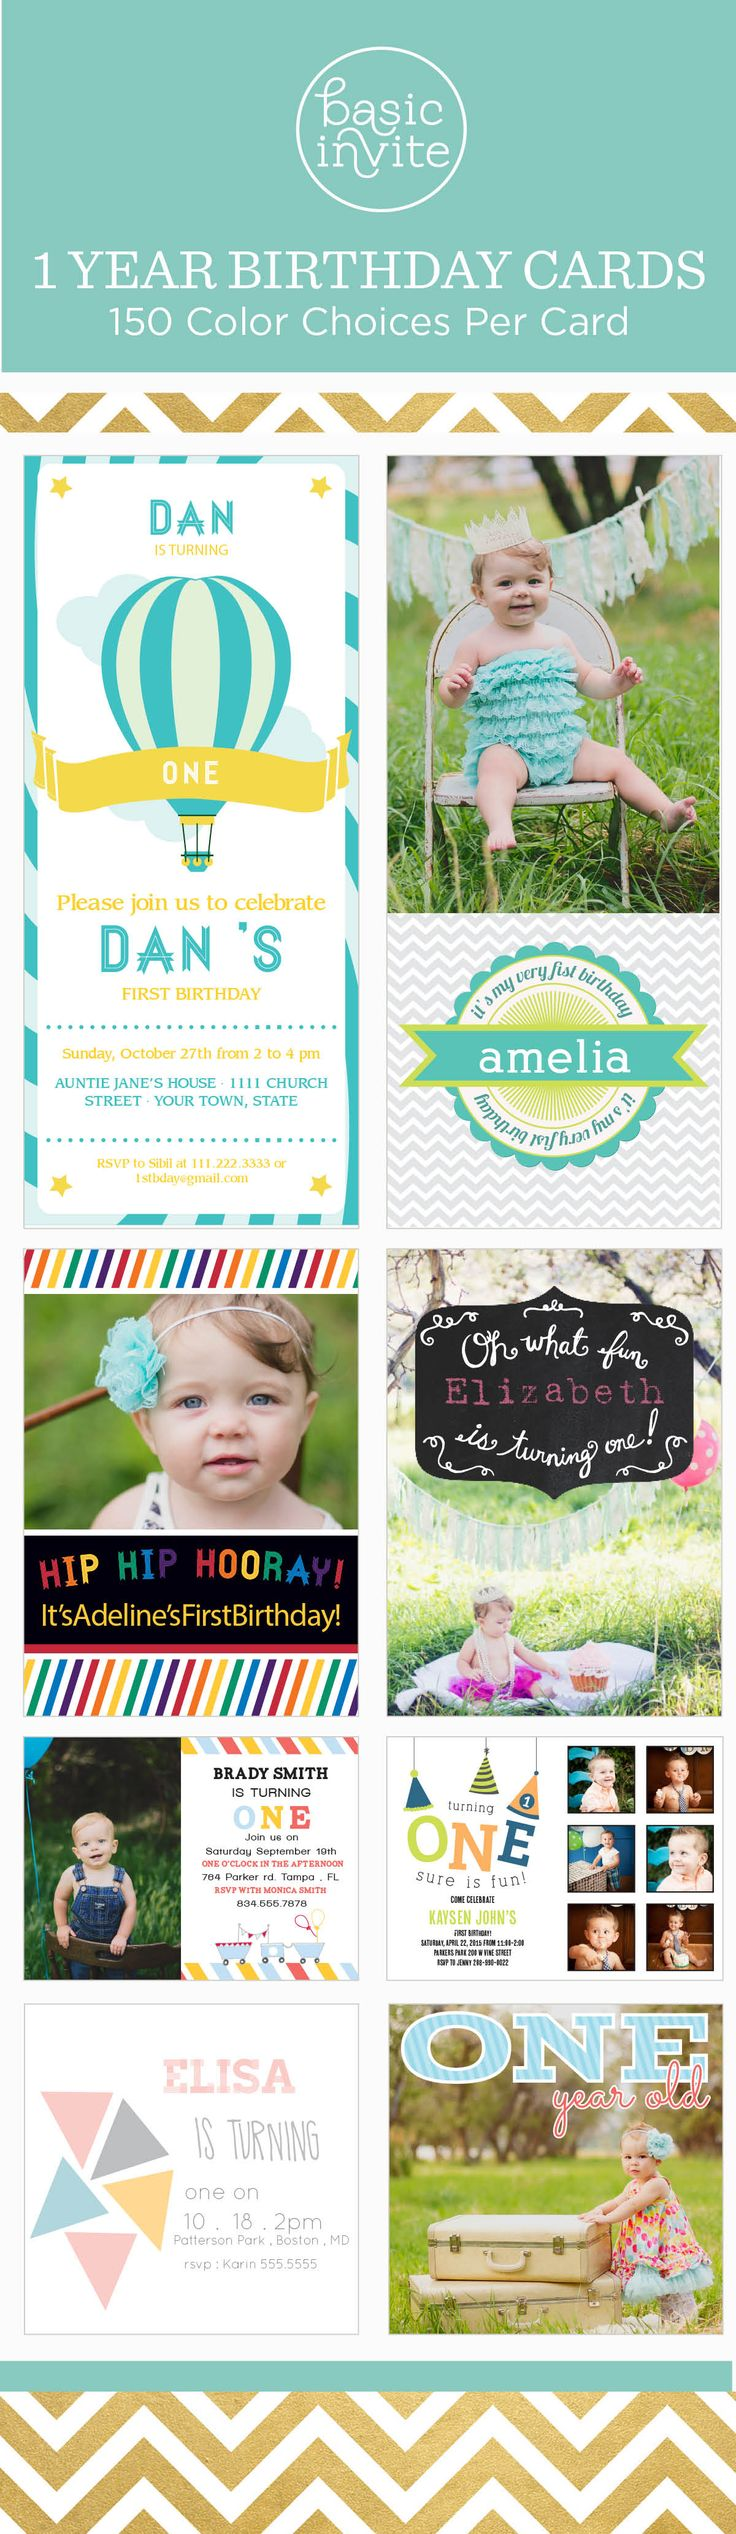 Over 100 Different First Birthday Invitations That Can Be Instantly Personalized Online.